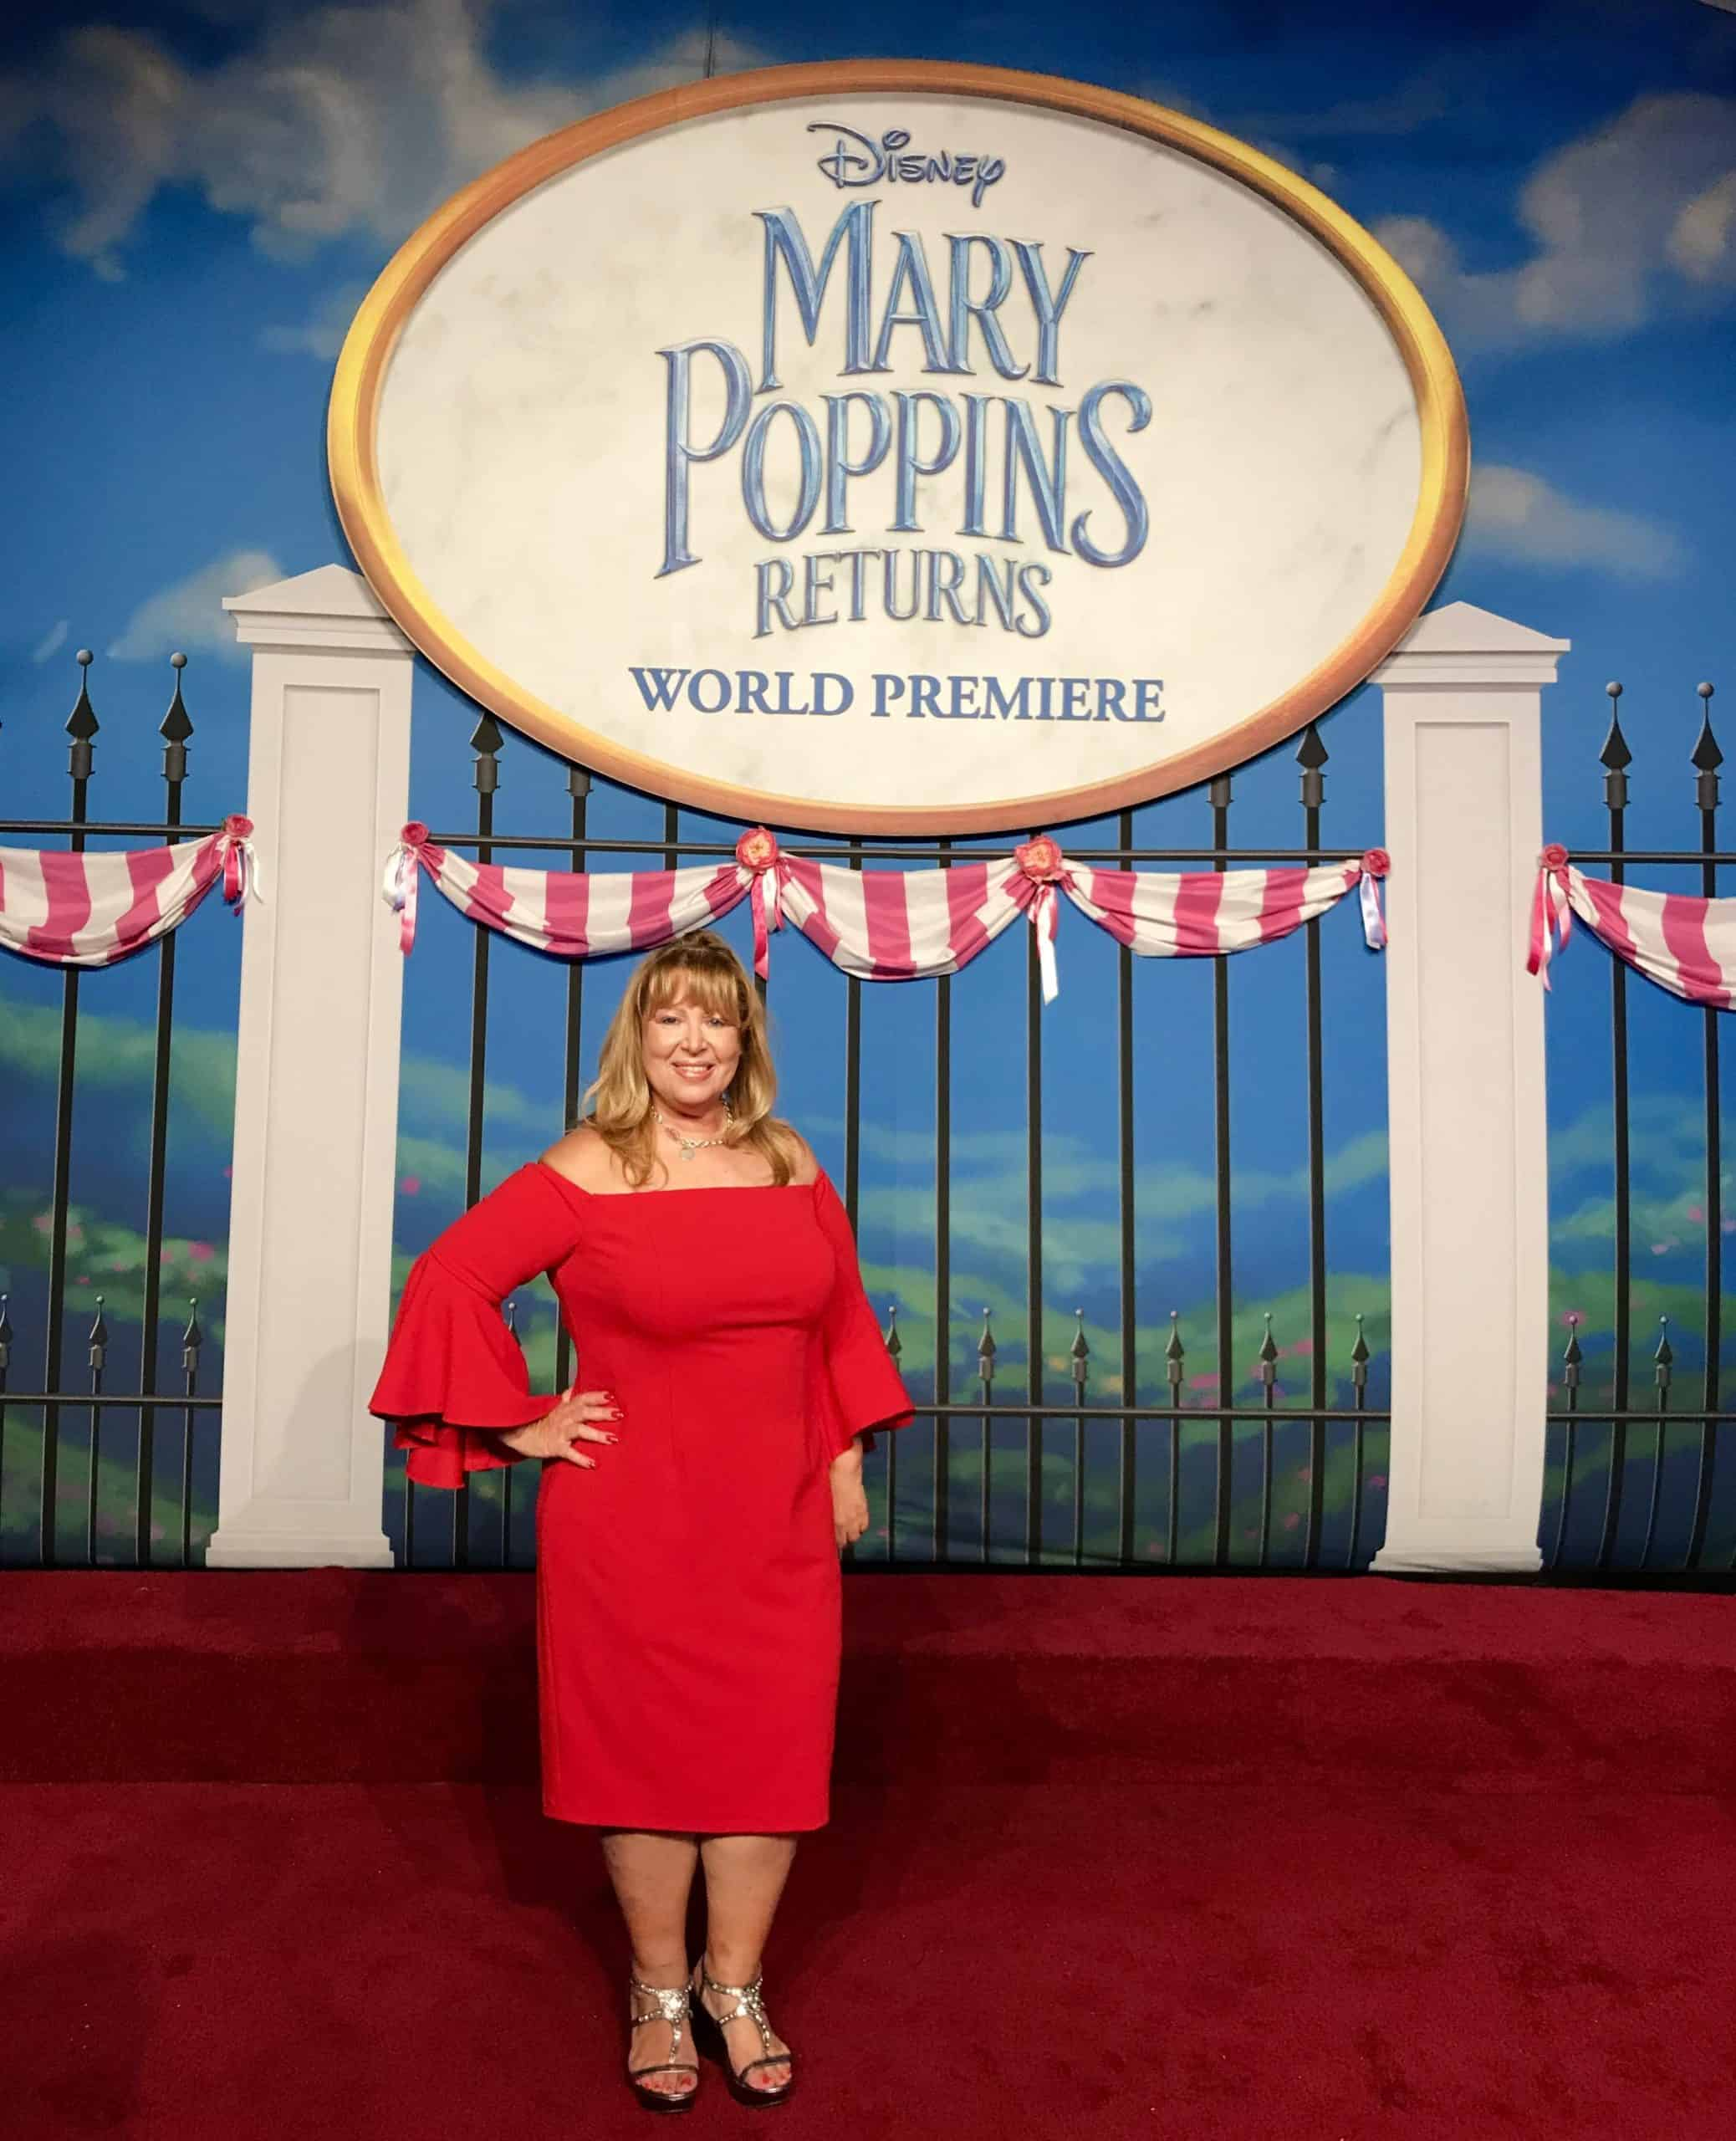 Myrah in front of Disney Mary Poppins Returns sign